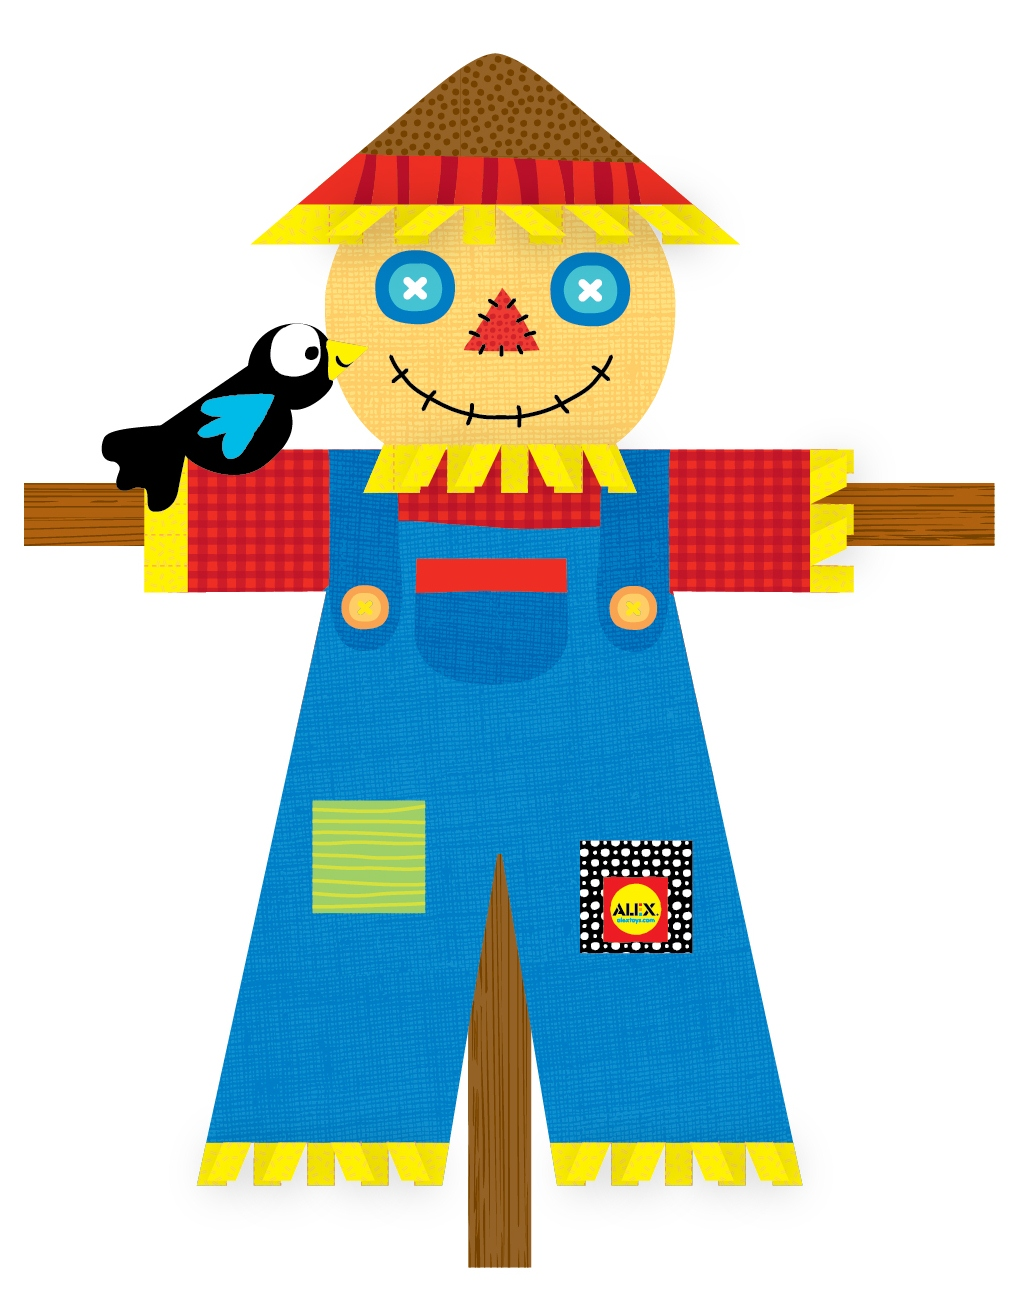 graphic regarding Printable Scarecrows named Printable: Organized, Preset, Scarecrow! ALEX Toys Formal Site